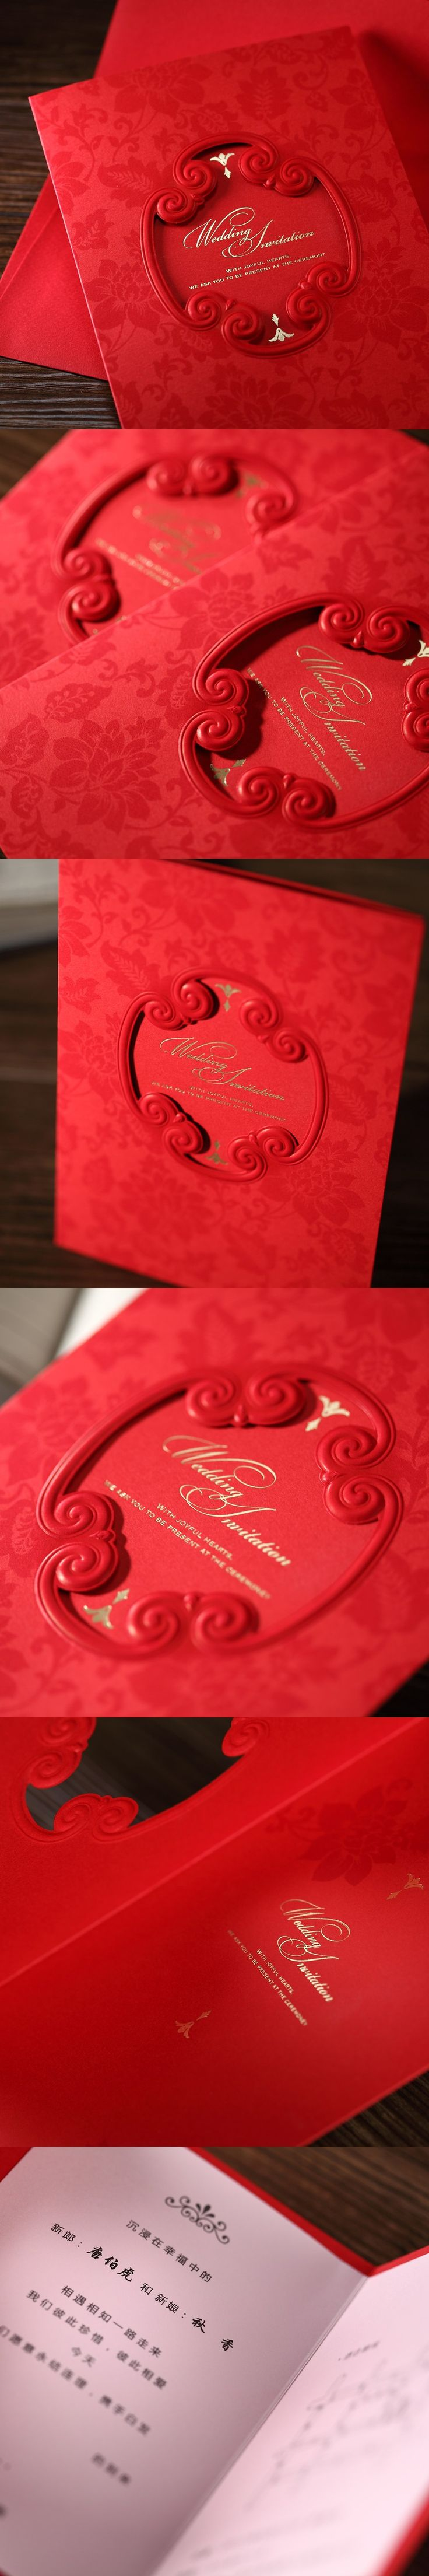 41 best Wedding Invites images on Pinterest | Indian wedding cards ...